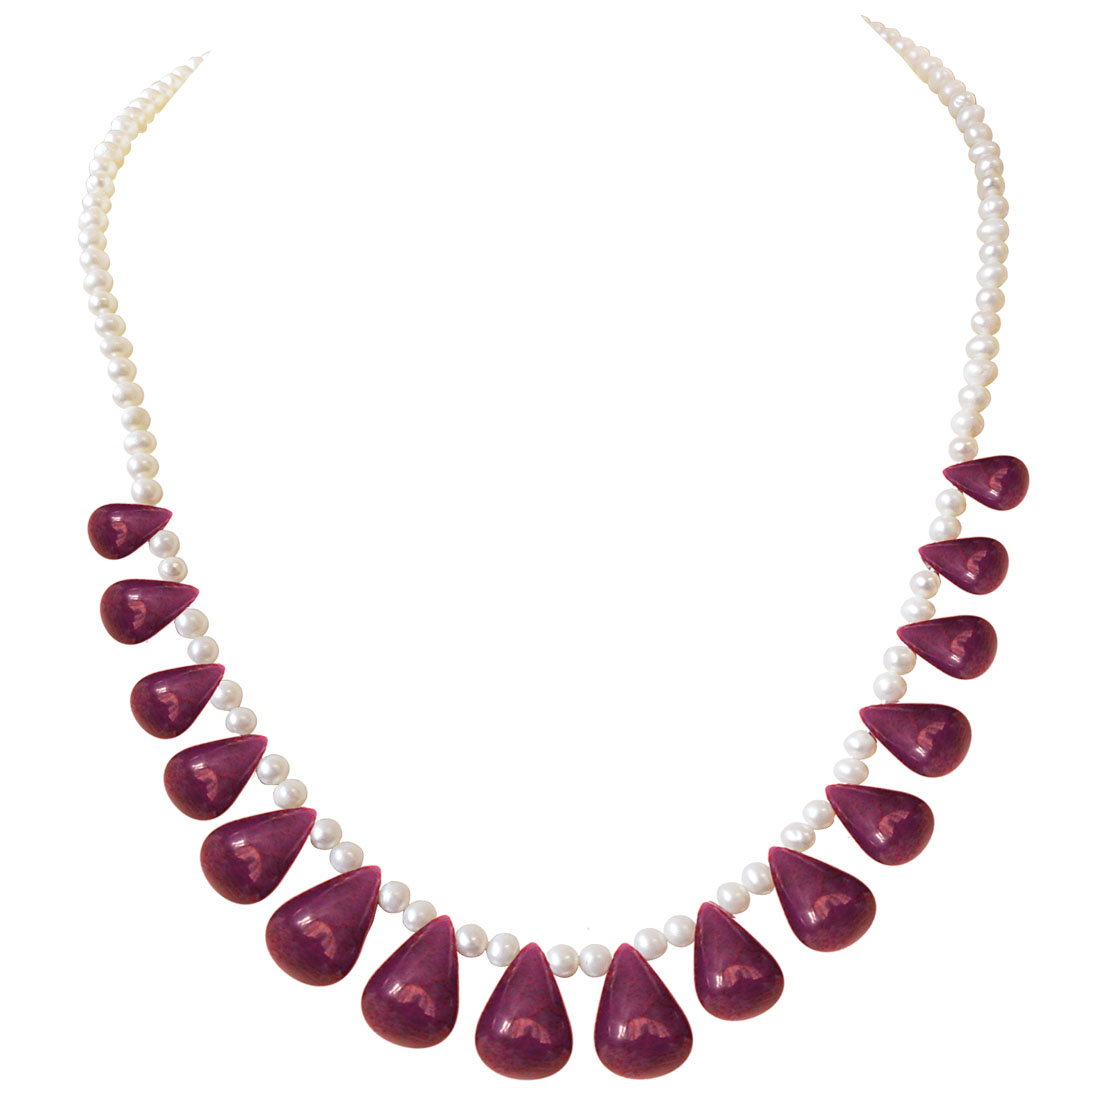 145cts Real Drop Ruby, Freshwater Pearl Necklace